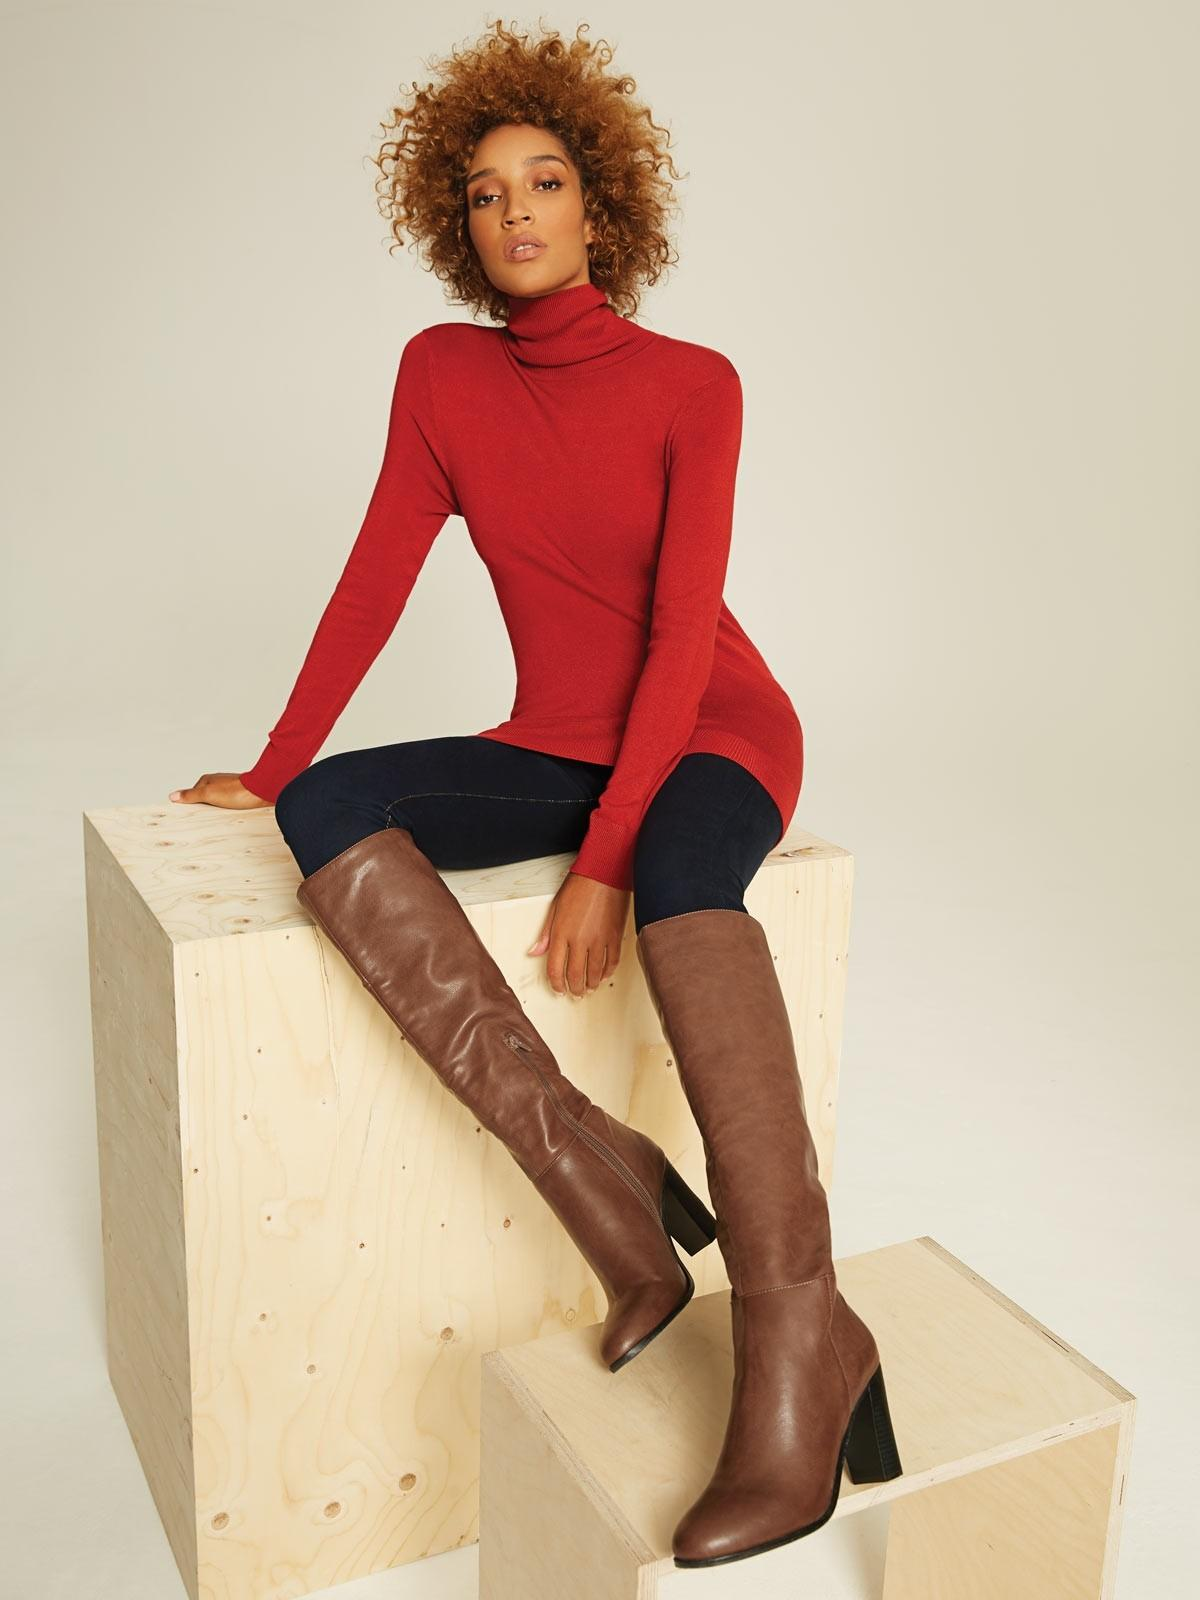 These knee-high boots give sophisticated edge to any party outfit.